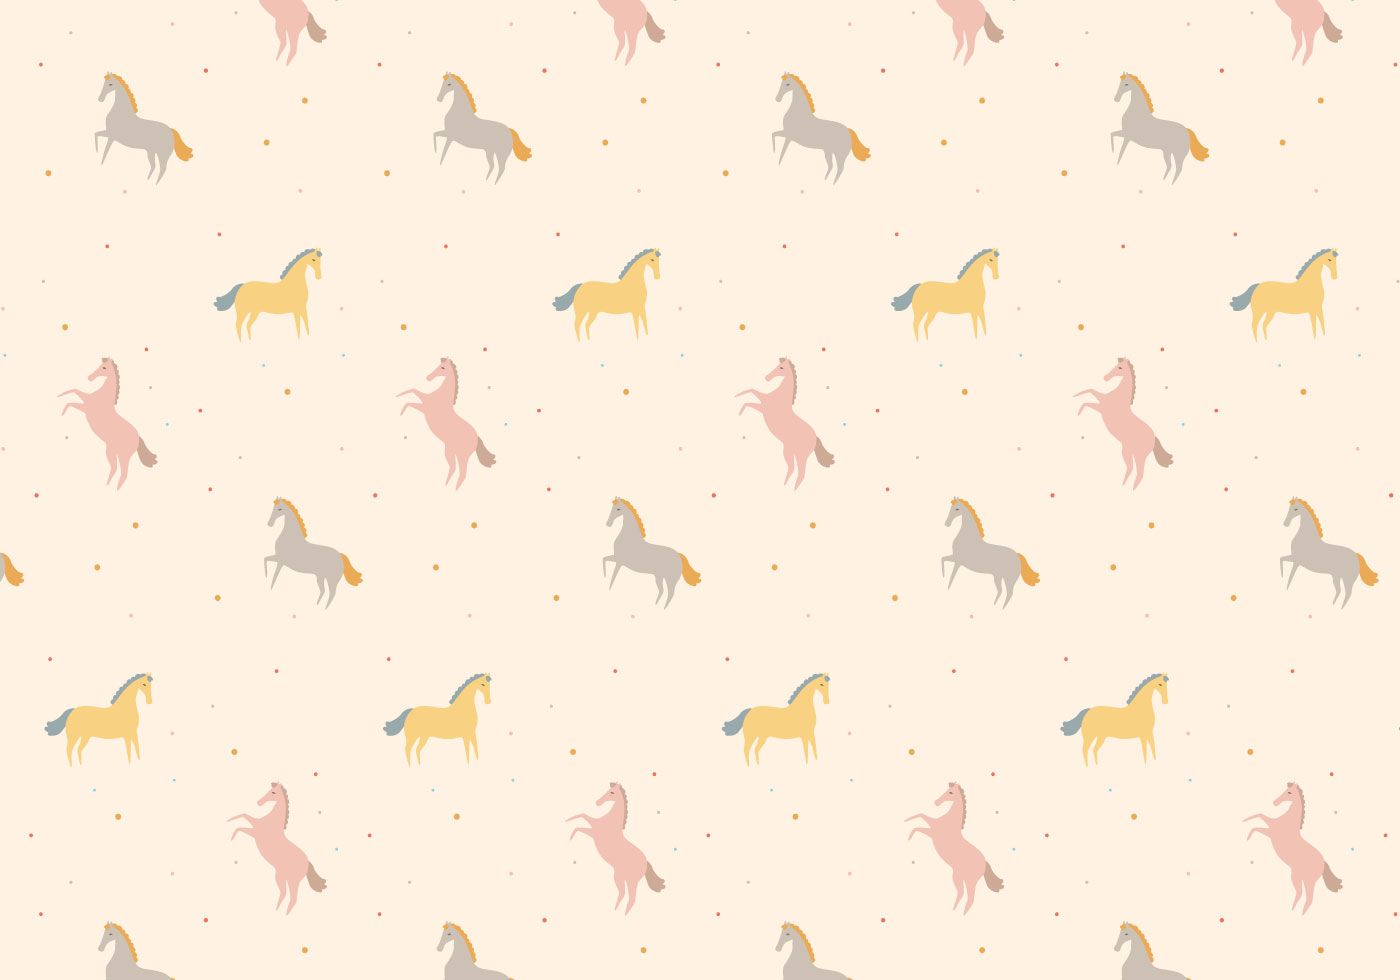 Popular Wallpaper Horse Pattern - df7068f58db3846371614b0dda8d2239  Picture_872748.jpg